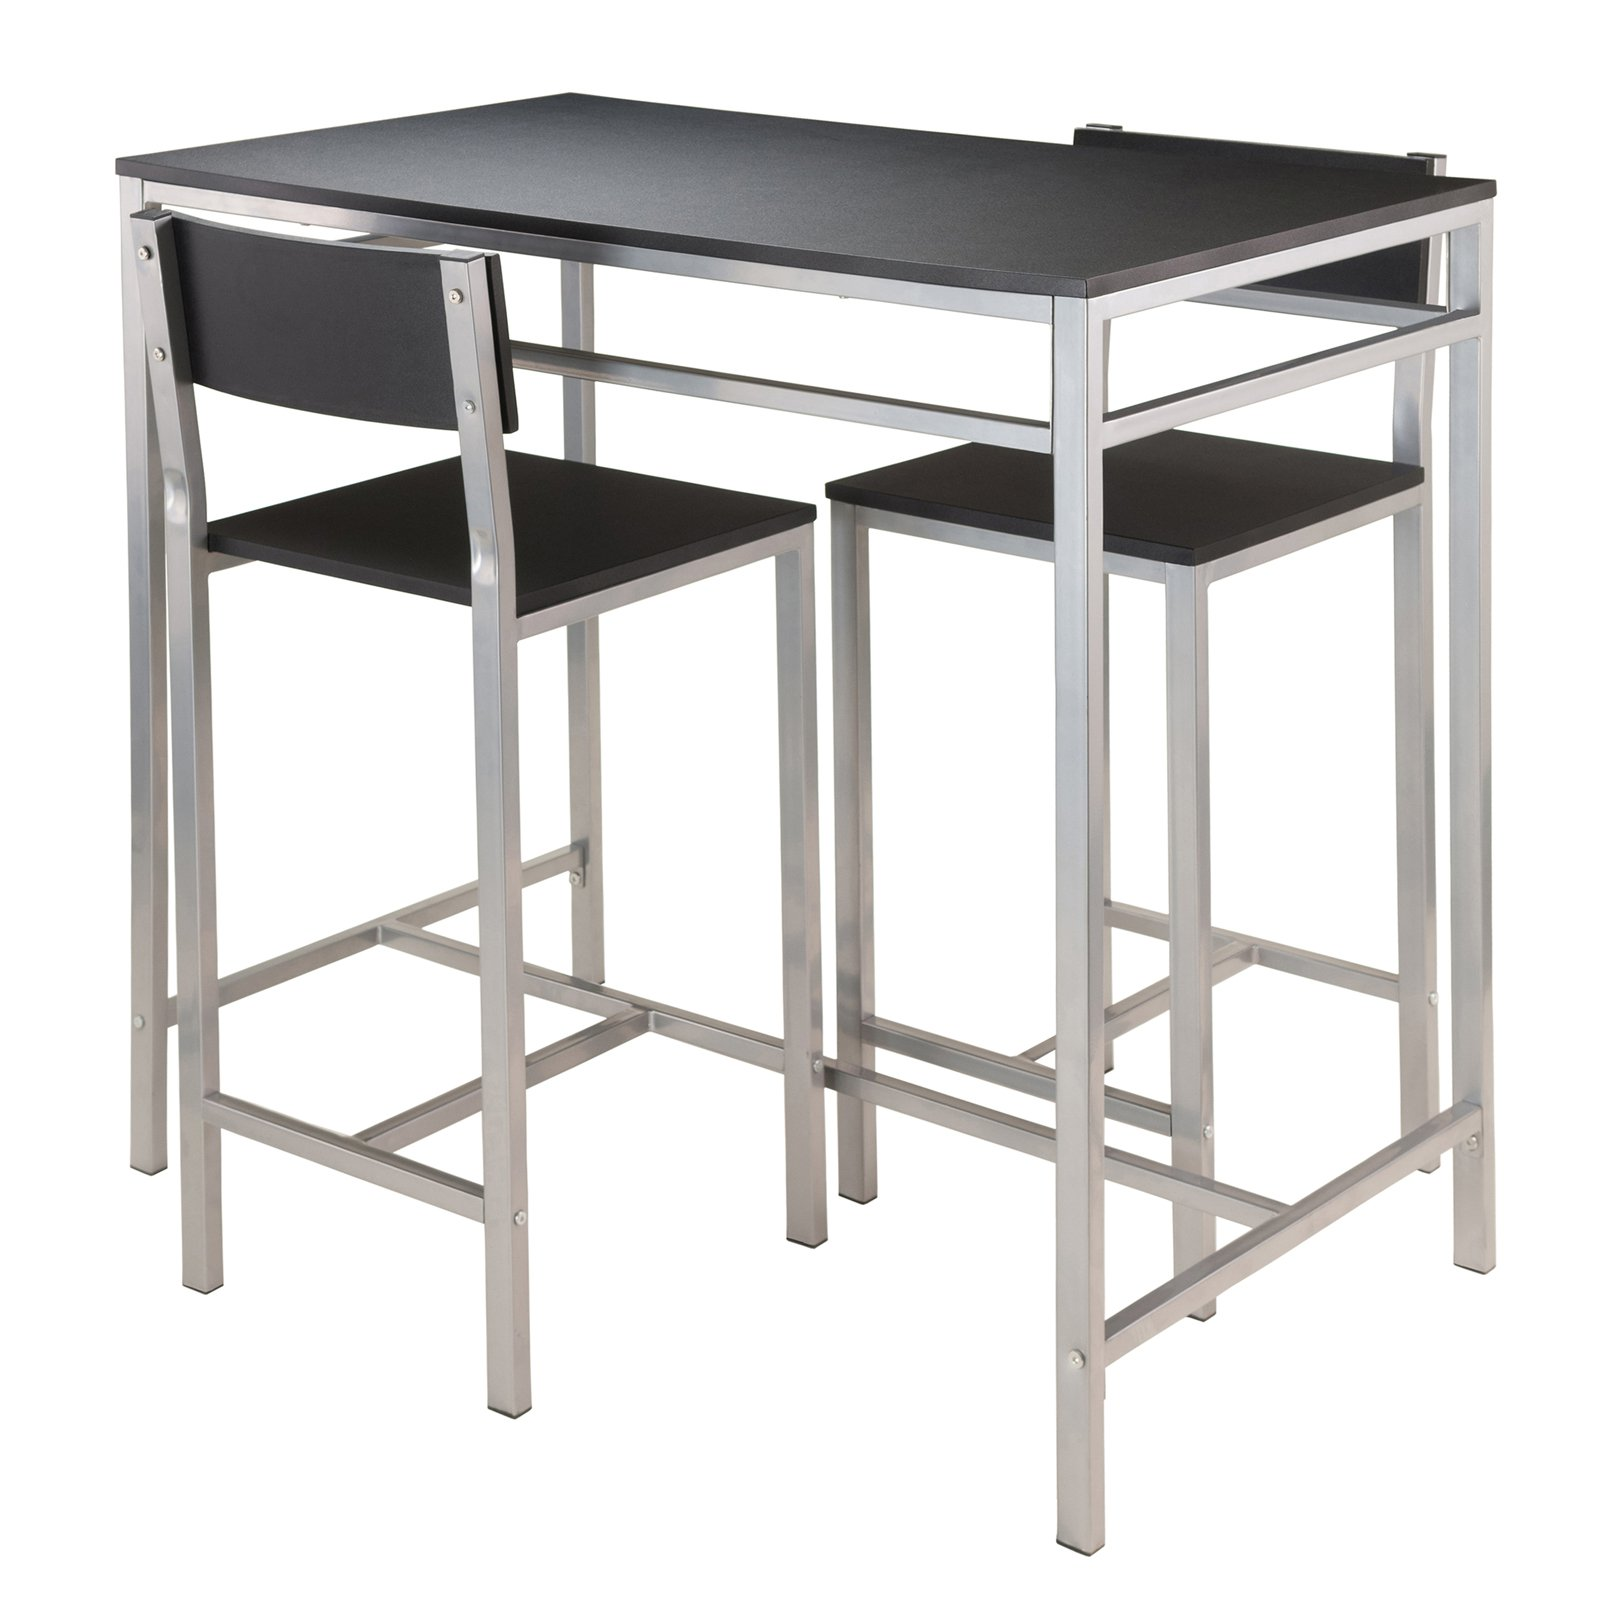 Winsome Hanley 3 Piece Kitchen High Table Set, Black Top/Metal Frame    Walmart.com